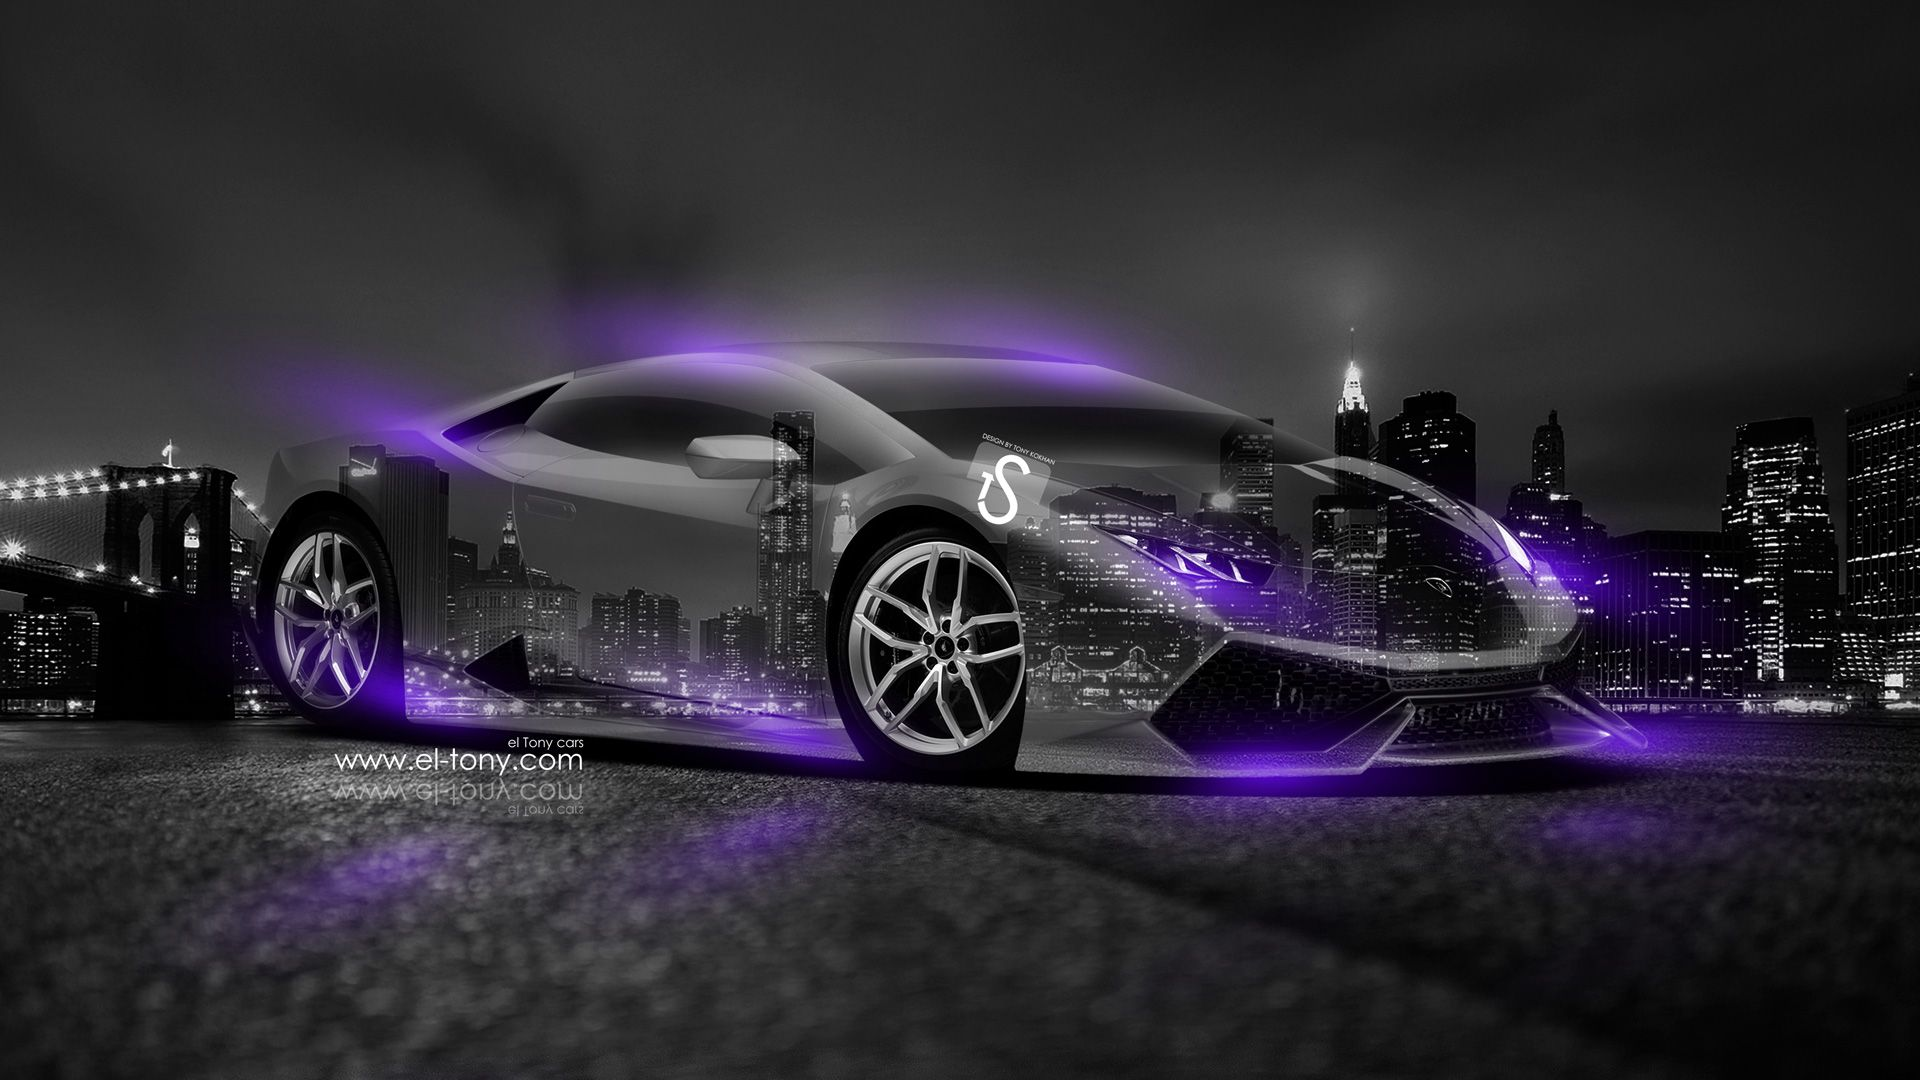 Lamborghini Backgrounds Wallpaper (20)  Http://www.urdunewtrend.com/hd Wallpapers/motors/lamborghini/lamborghini Backgrounds Wallpaper 20/  Lamborghu2026